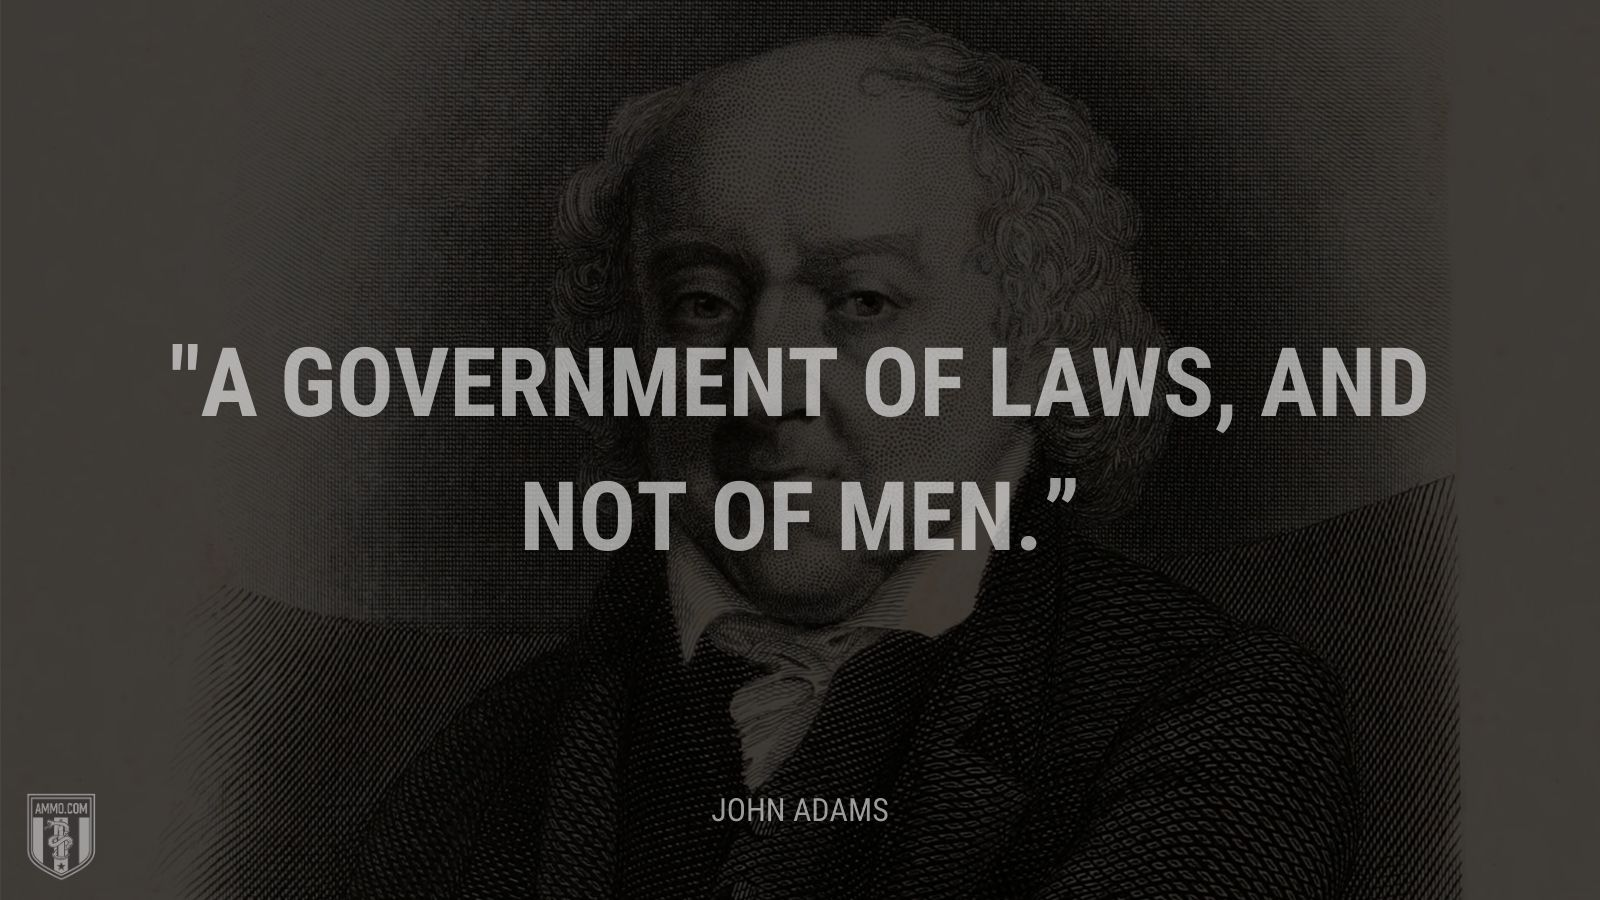 """A government of laws, and not of men."" - John Adams"